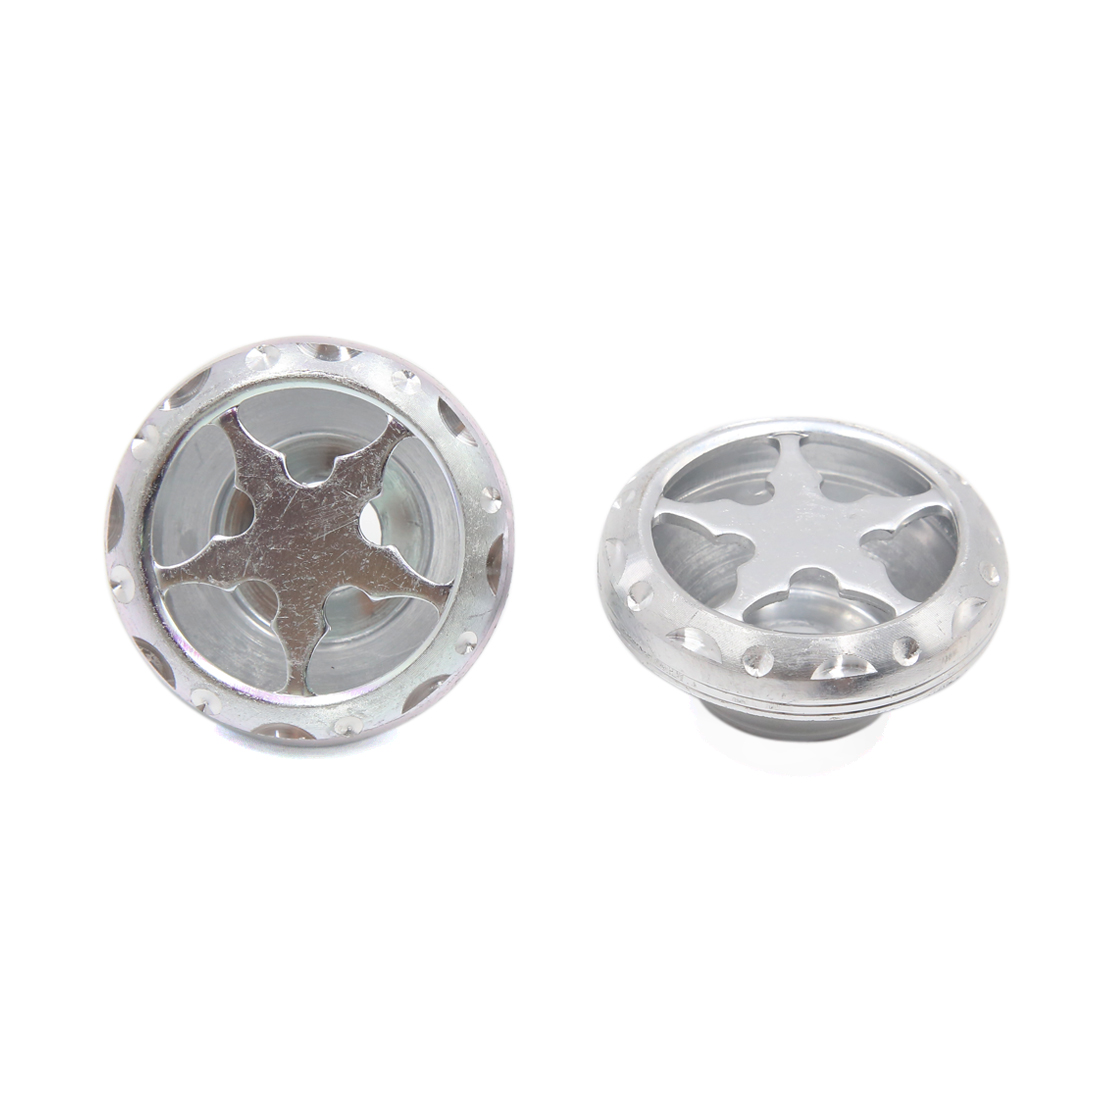 2Pcs Silver Tone Motorcycle Fork Cup Front-wheel Damping Drop Resistance Cups